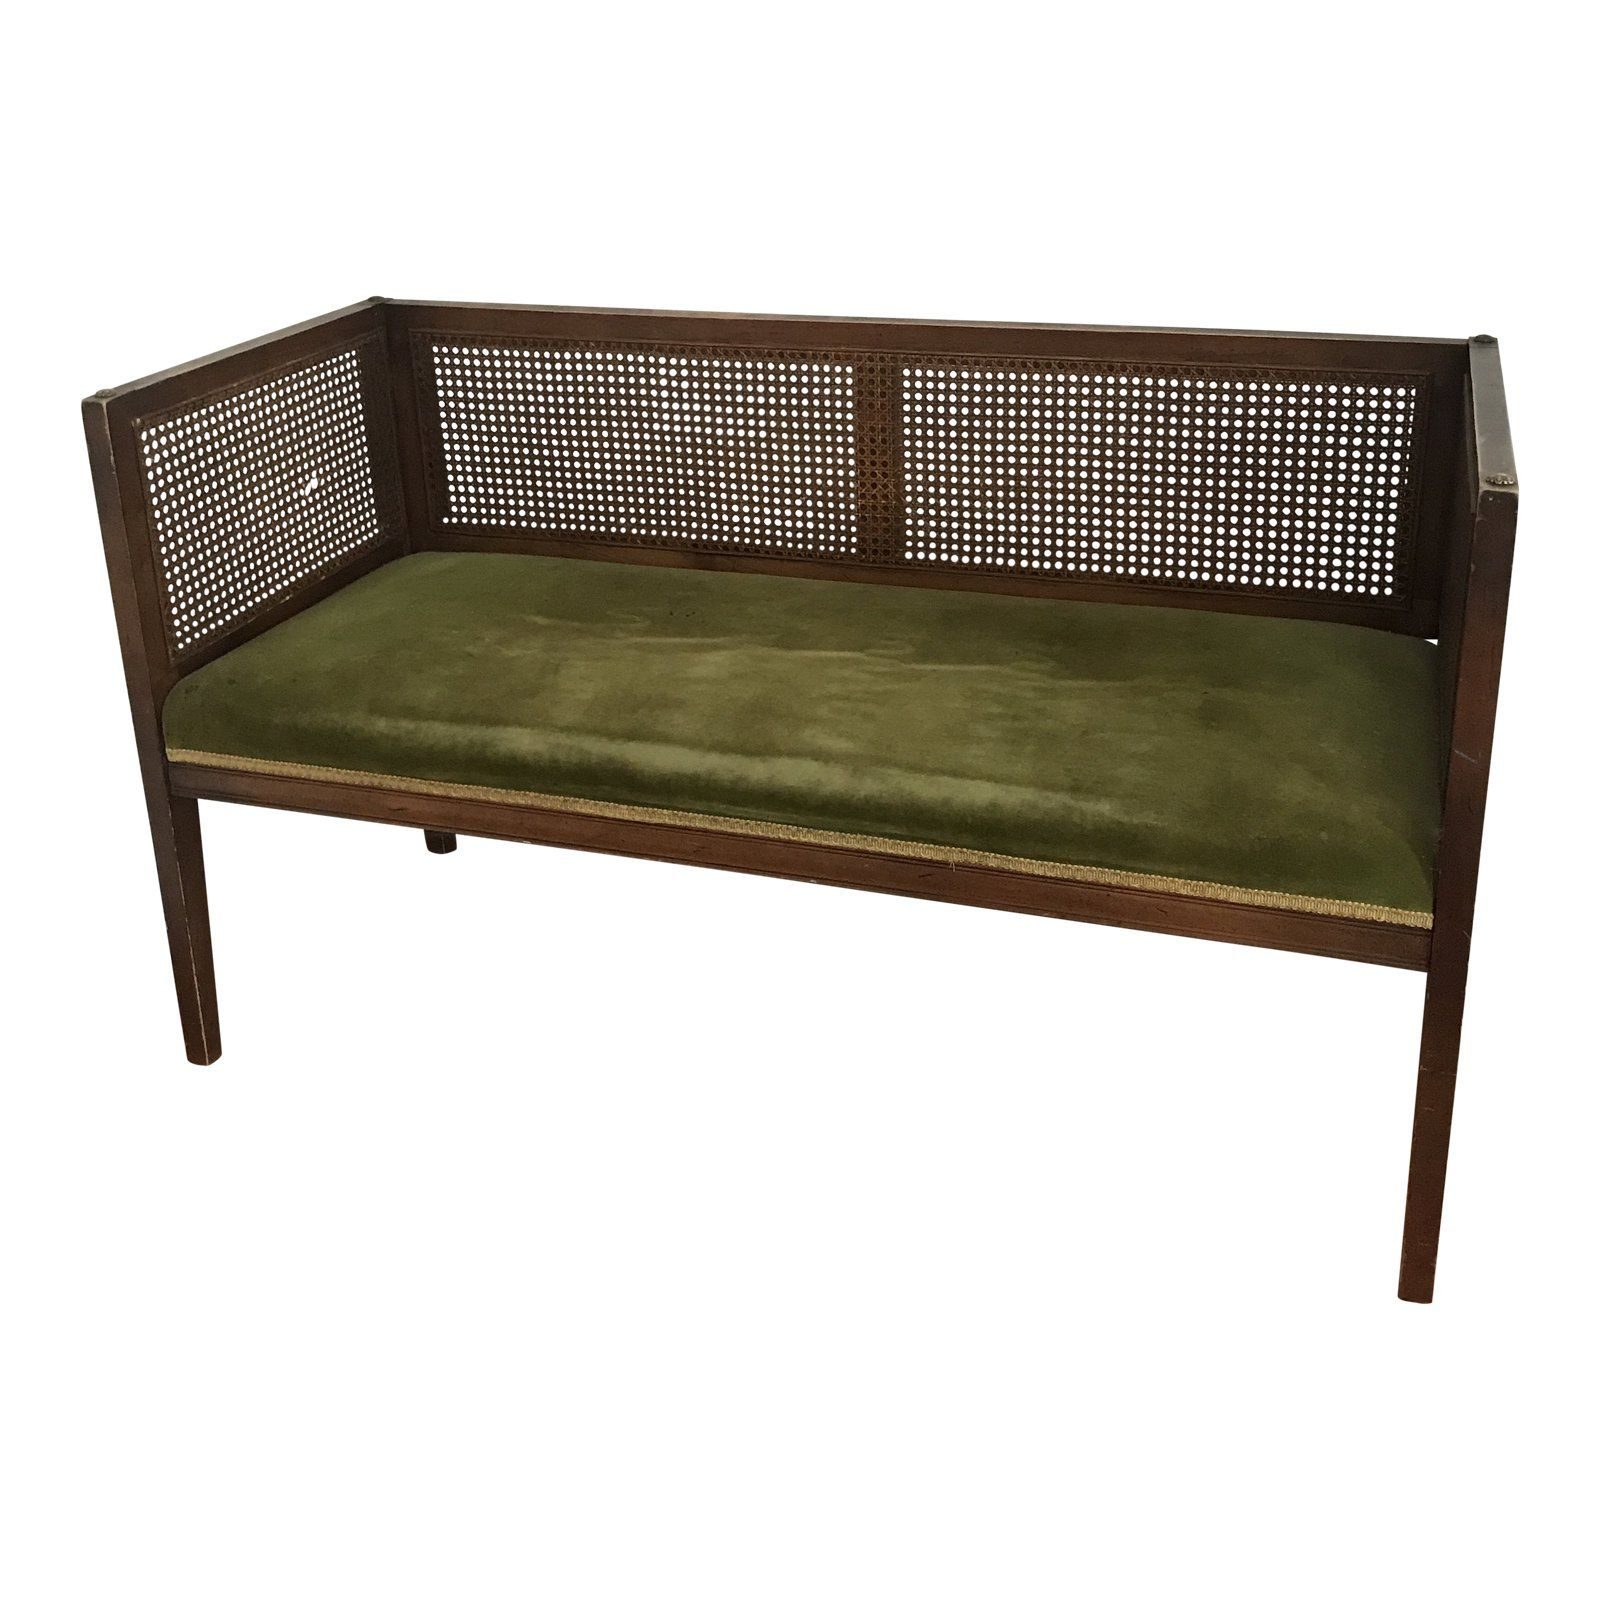 Antique Wooden Bench For Sale Wooden Benches For Sale How To Antique Wood Benches For Sale